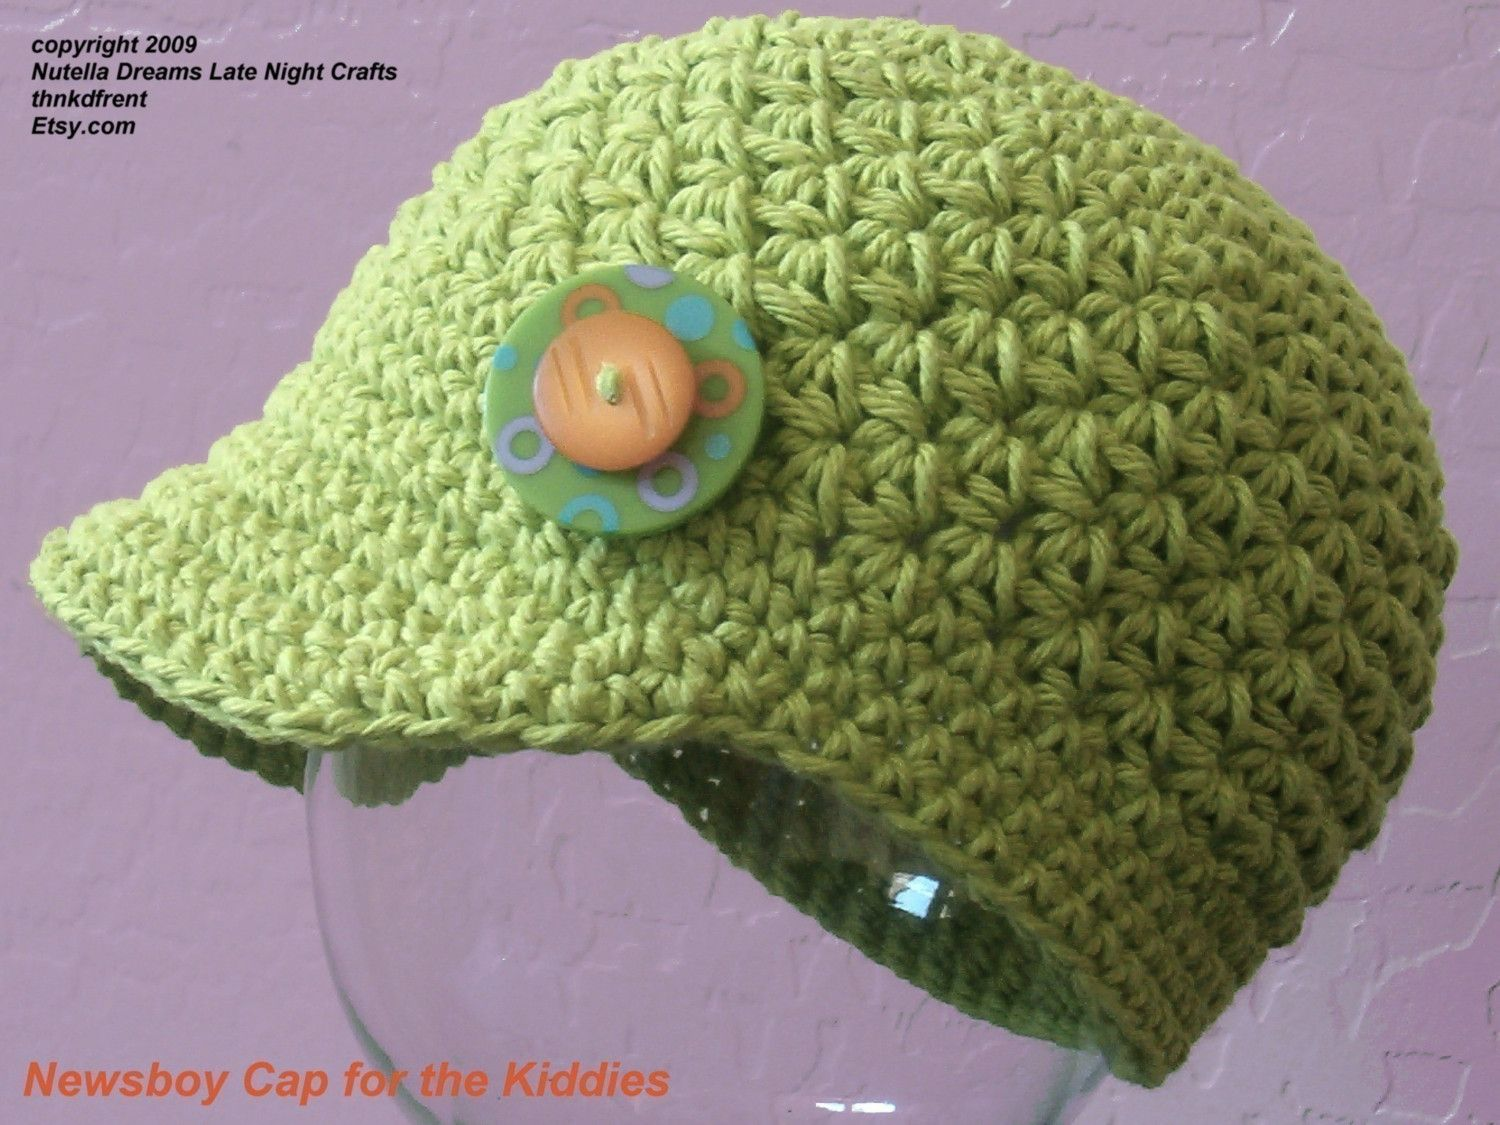 Crazy easy newsboy cap for the kiddies crochet pattern cozy cotton this site is no longer working i will keep it pinned for idea crazy easy newsboy cap for kids and adult crochet pattern cozy cotton fun bankloansurffo Choice Image